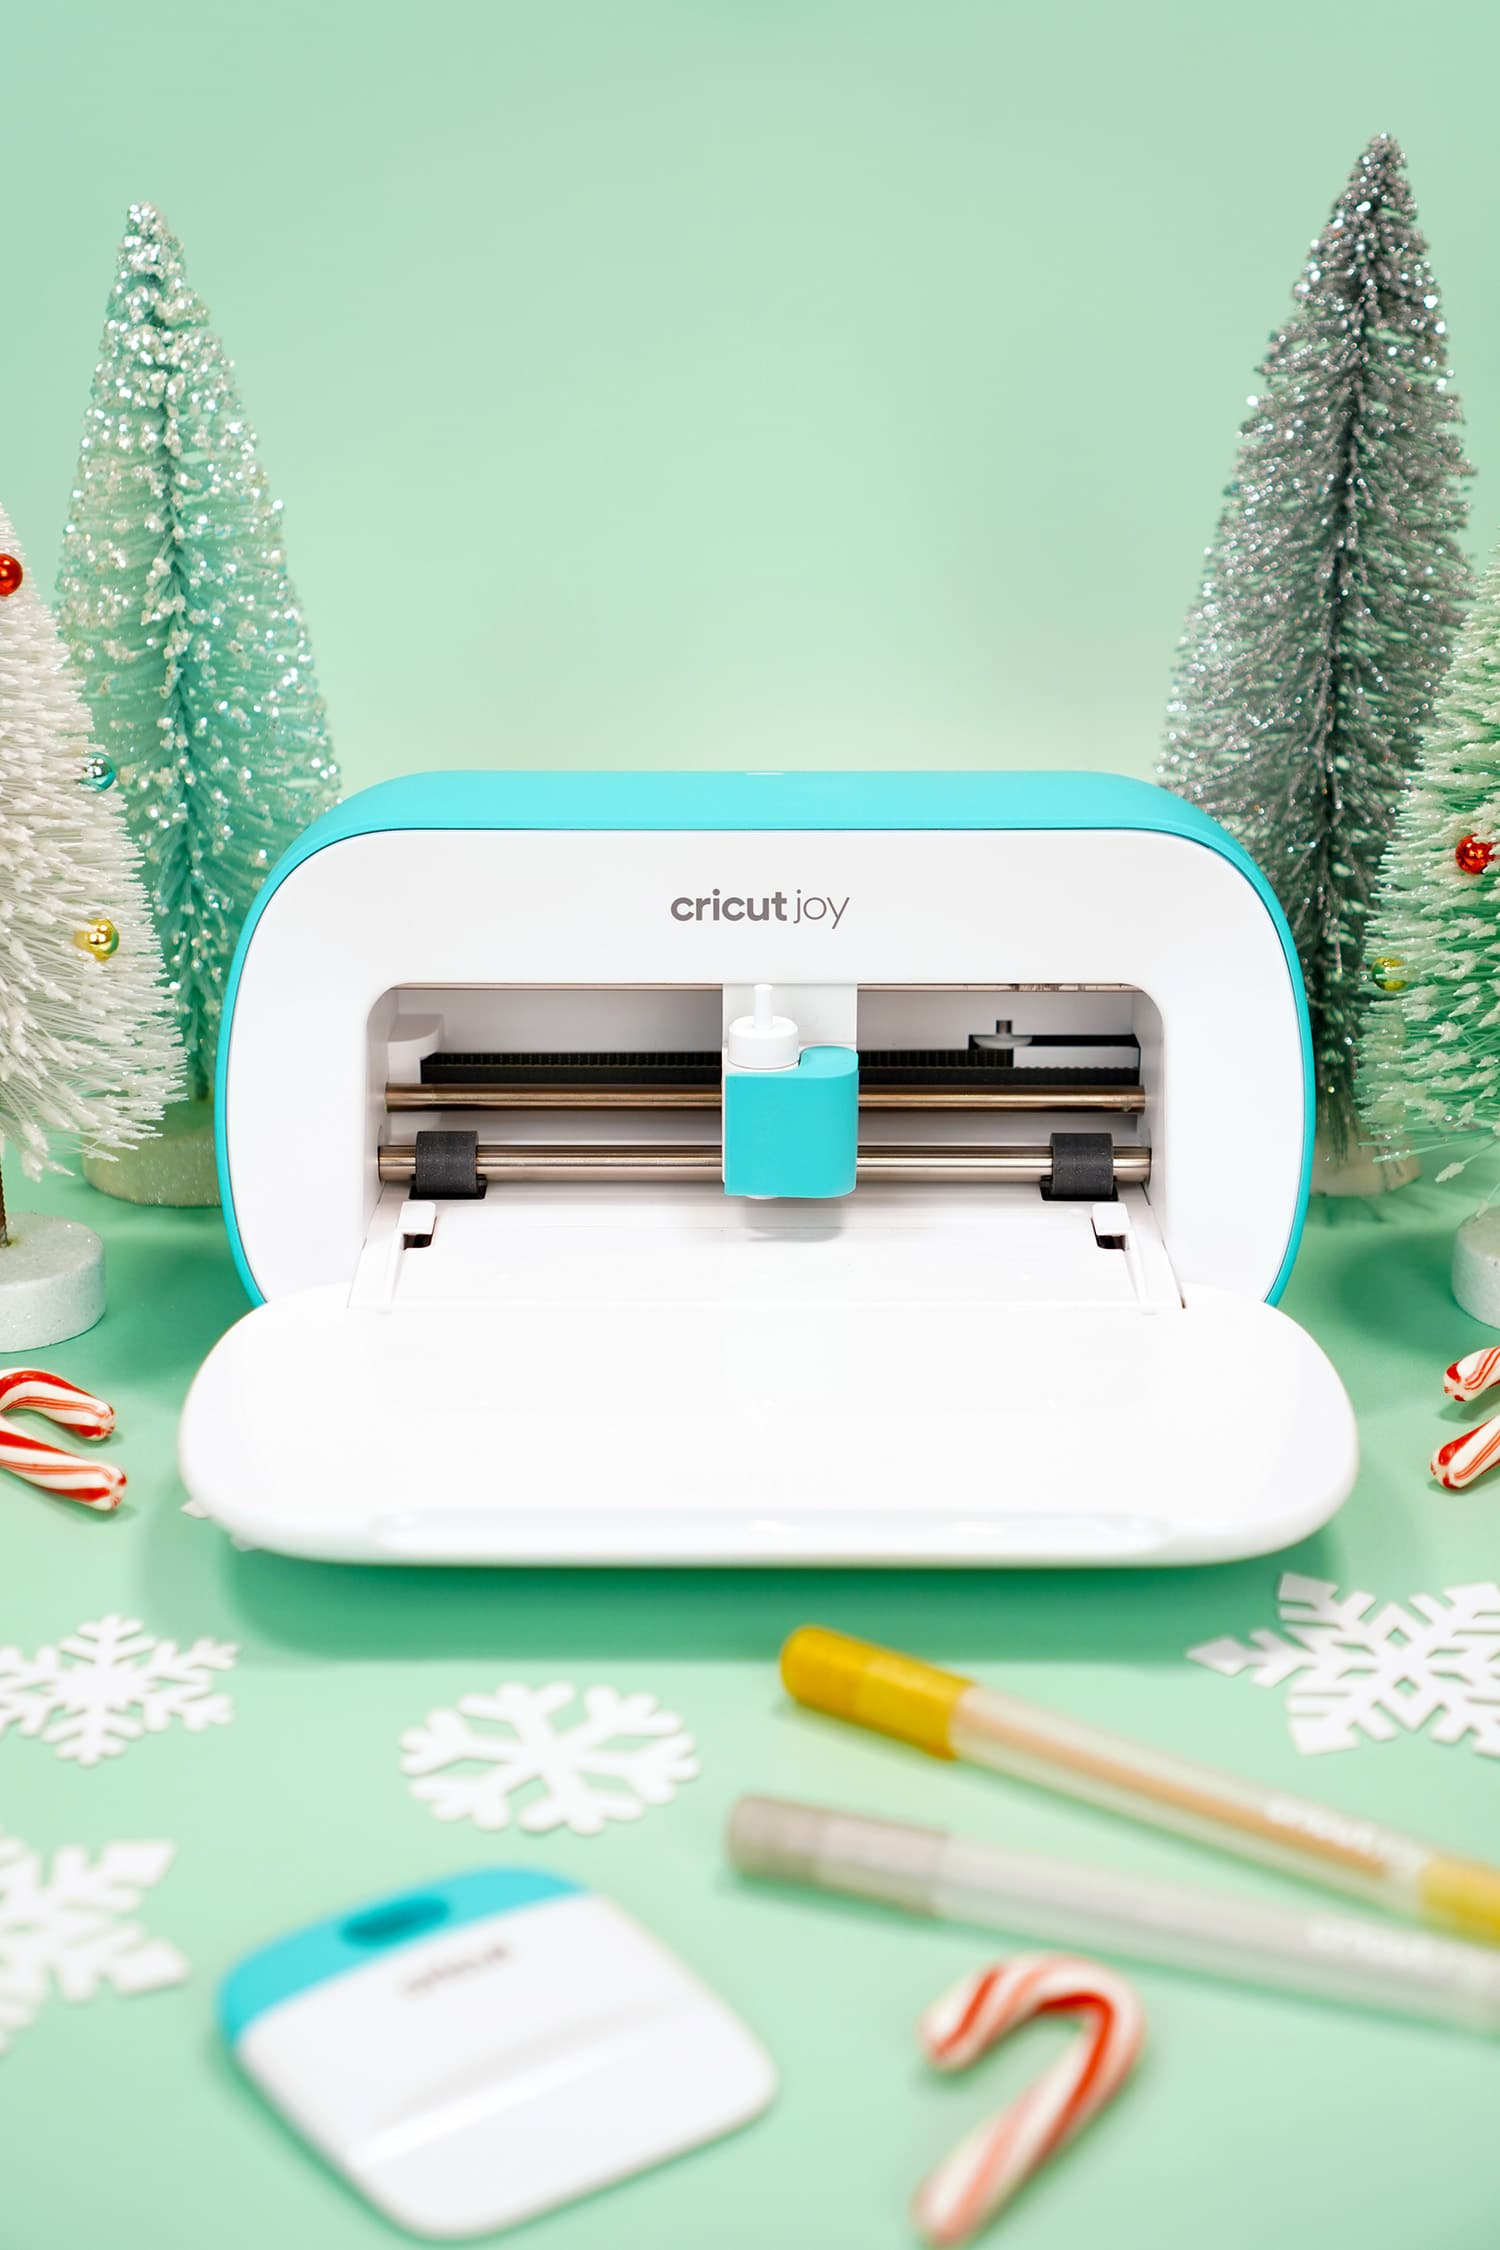 Cricut Joy machine surrounded by Cricut tools, paper snowflakes, and candy canes on mint green background